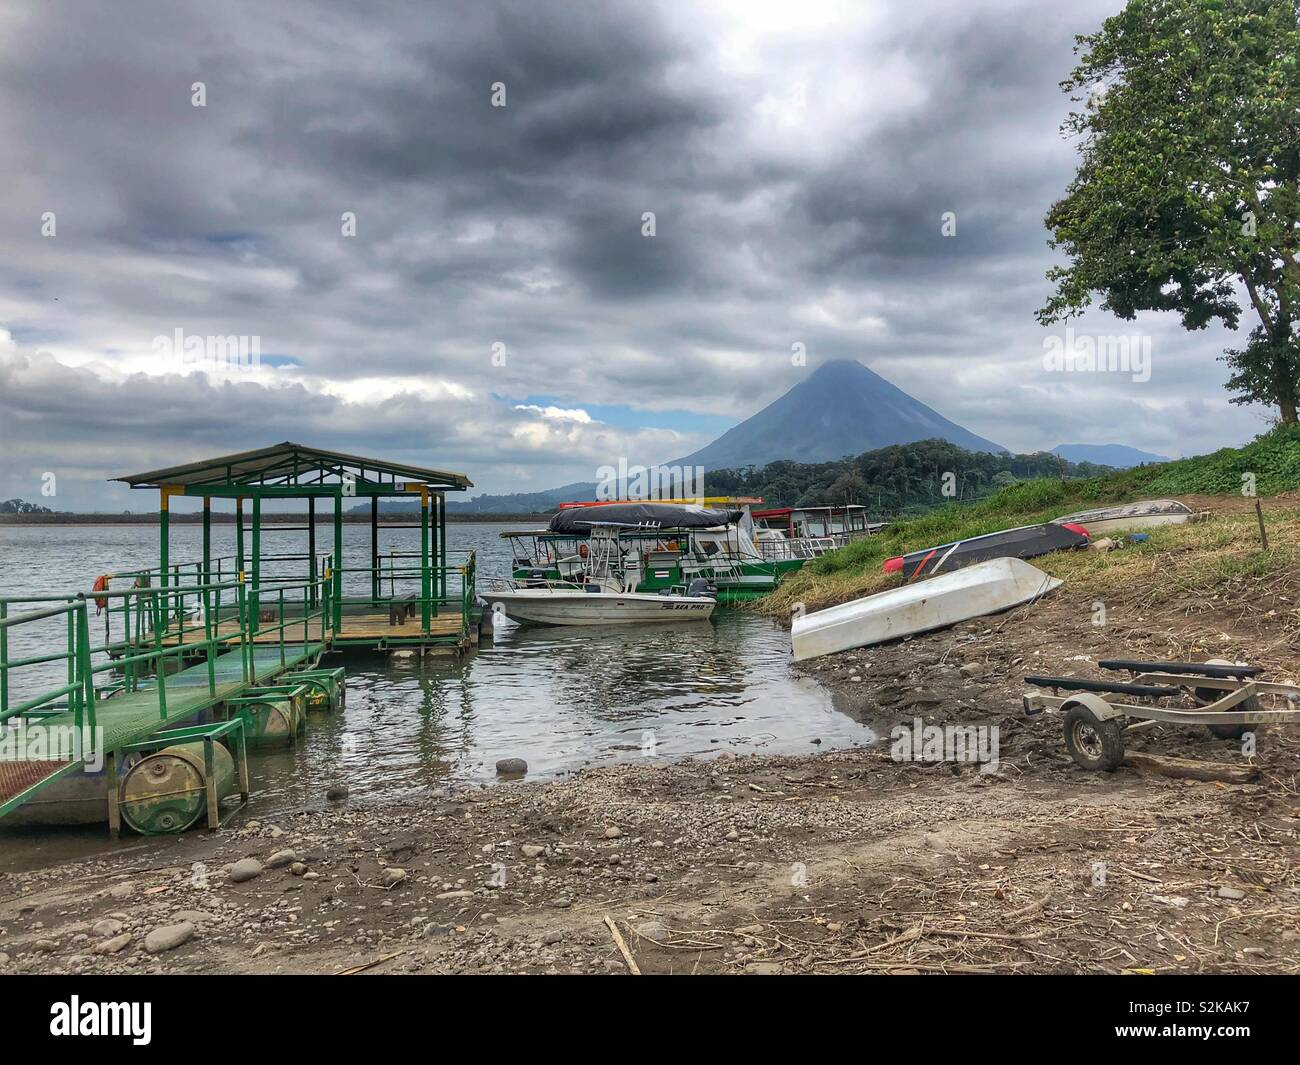 Boat launch on Lake Arenal in Costa Rica. - Stock Image